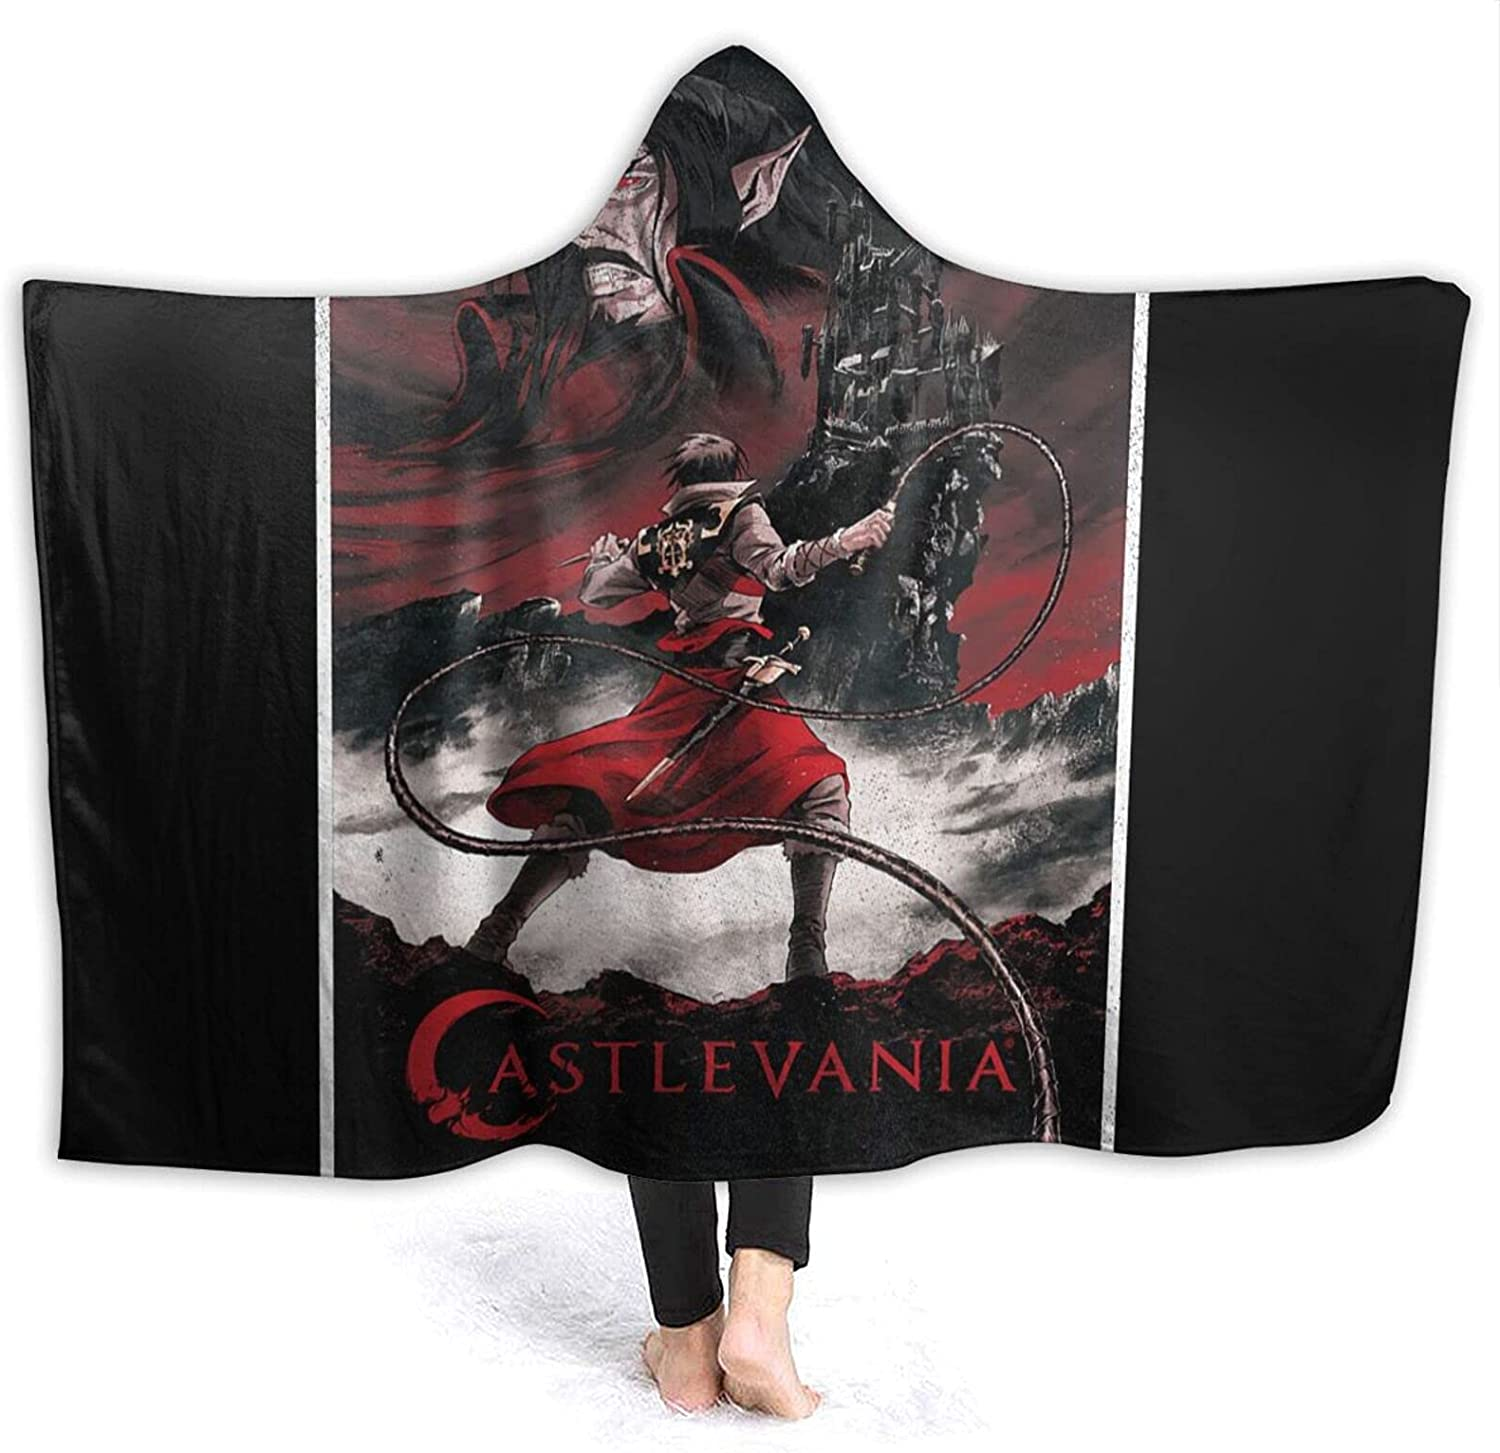 Castlevania Max 46% Clearance SALE! Limited time! OFF Hooded Blanket Throw Wearable Cuddle